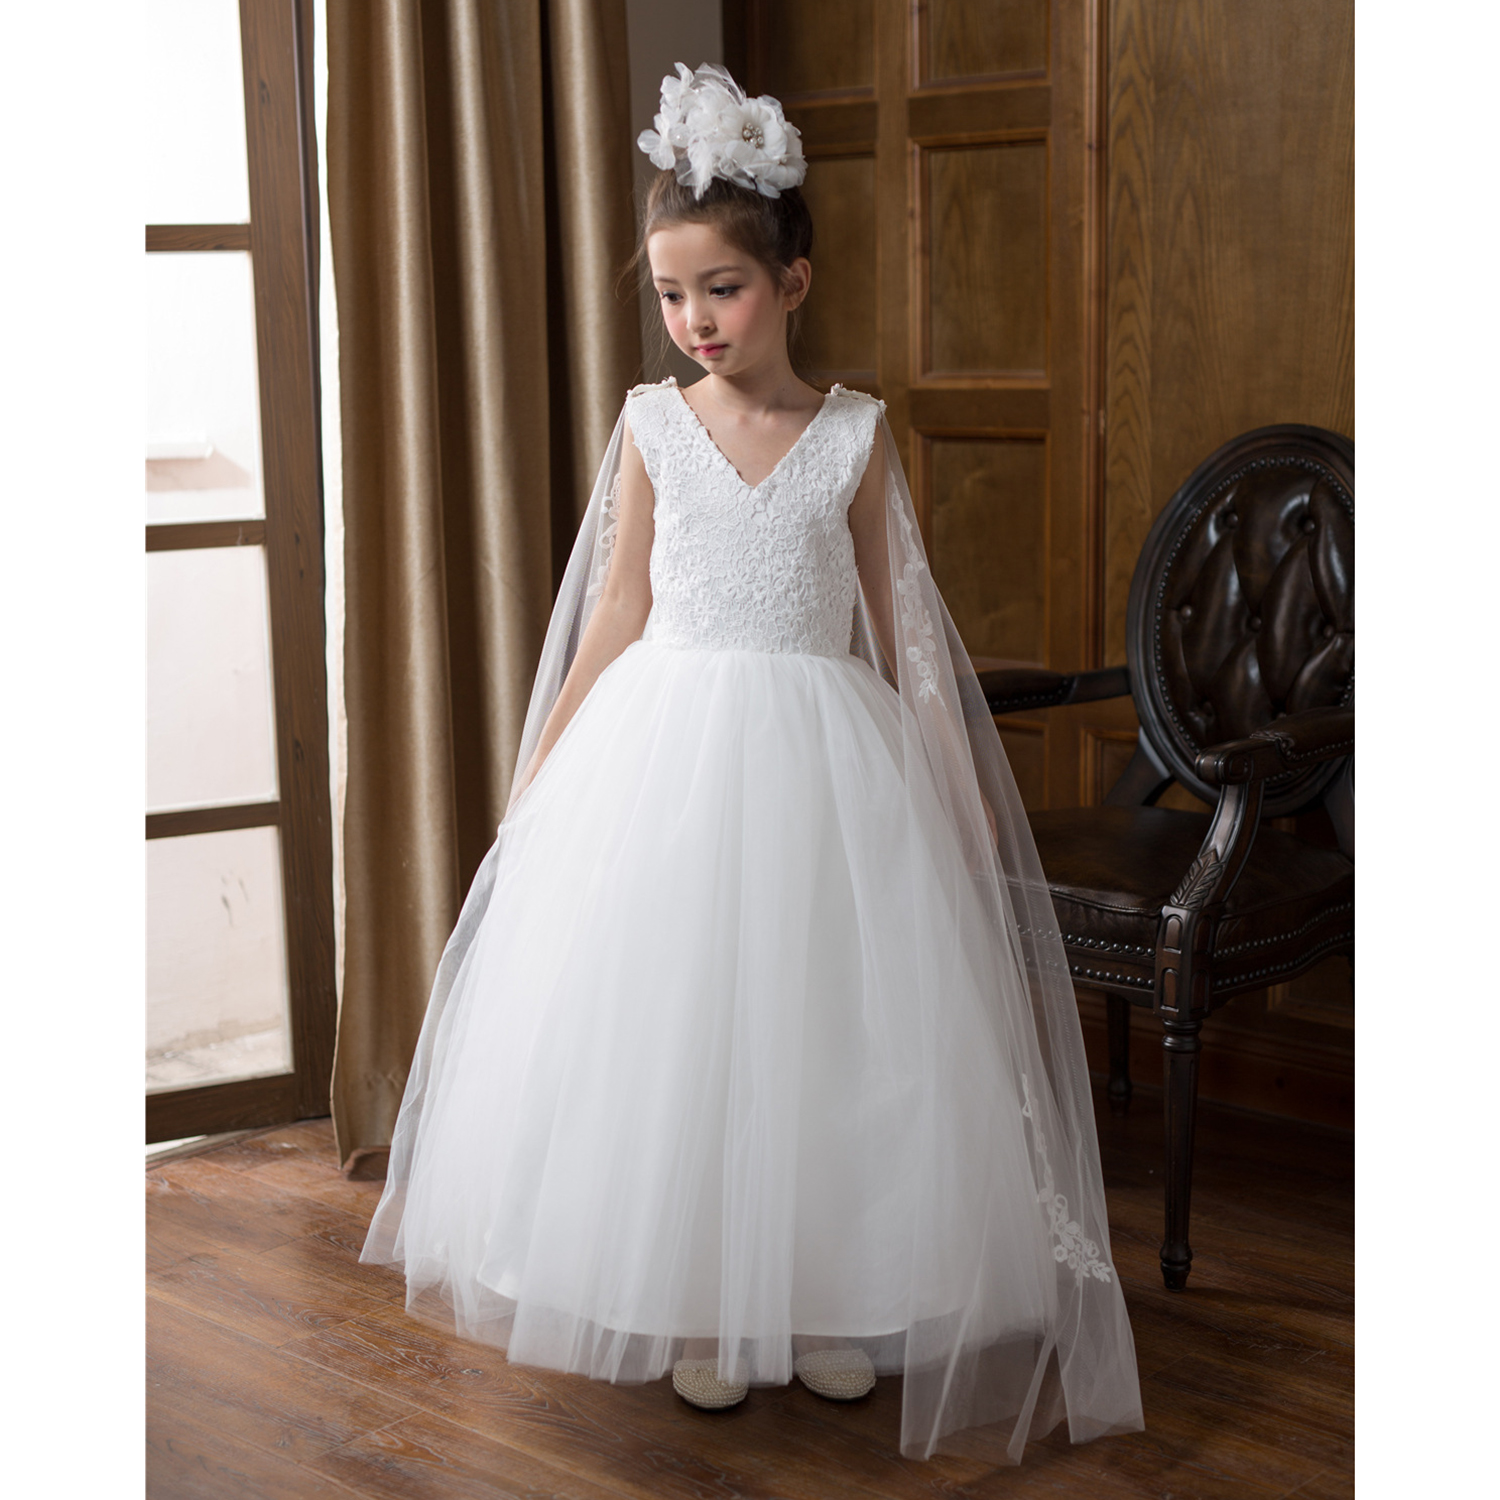 bf392493f316 ABWE Best Sale New Flower Girl Dress Summer Princess Costume Children Girl  Wedding Dress Kids Lace Party Dancing Dress Birthda-in Dresses from Mother    Kids ...